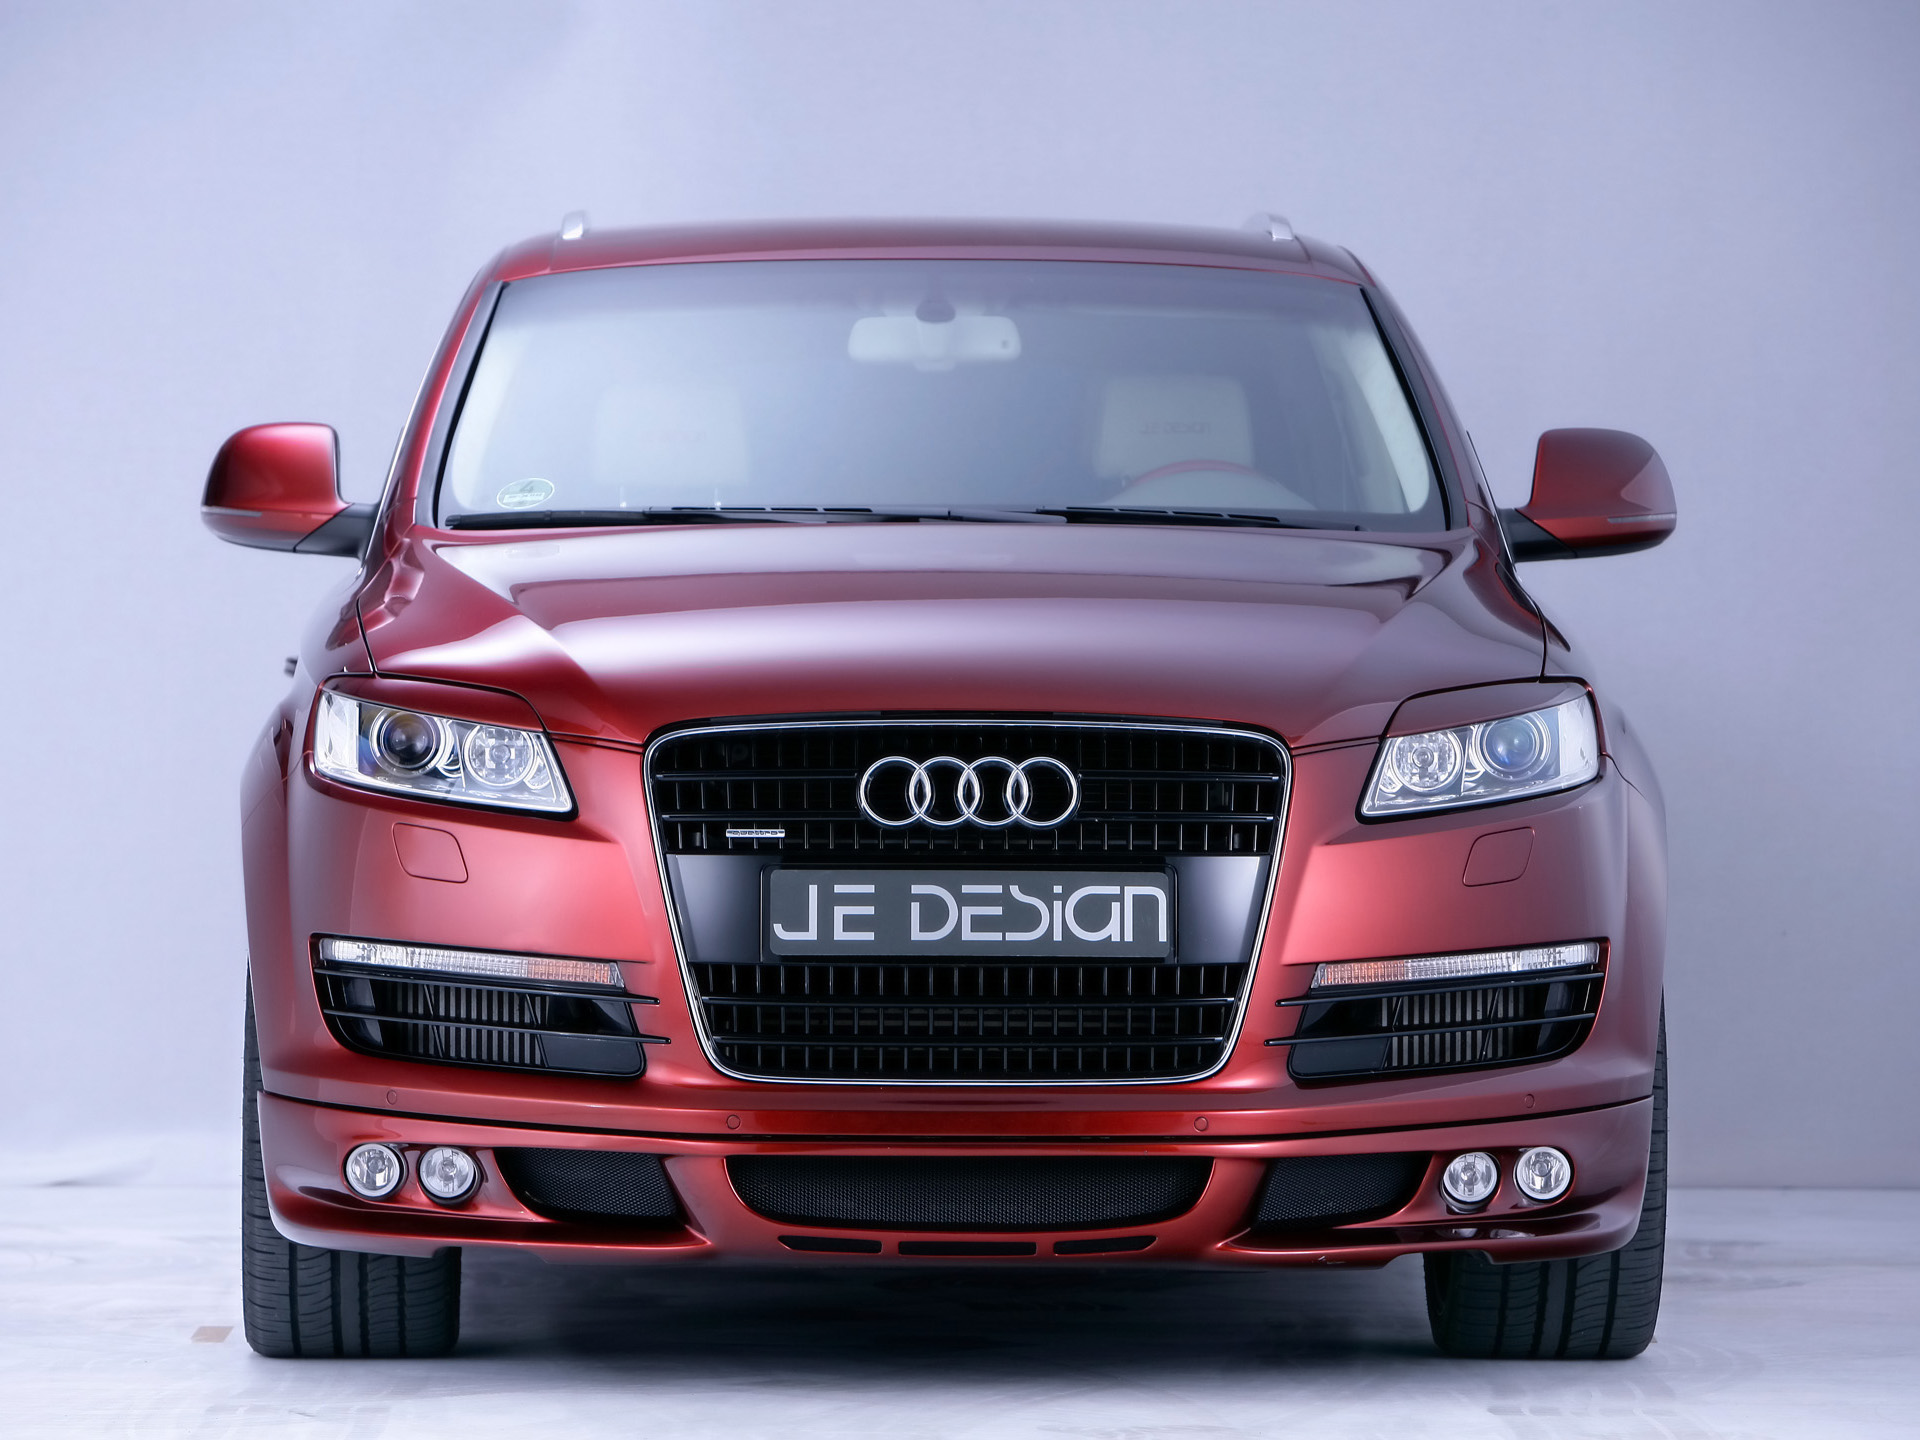 JE Design Audi Q7 Street Rocket photo 56745